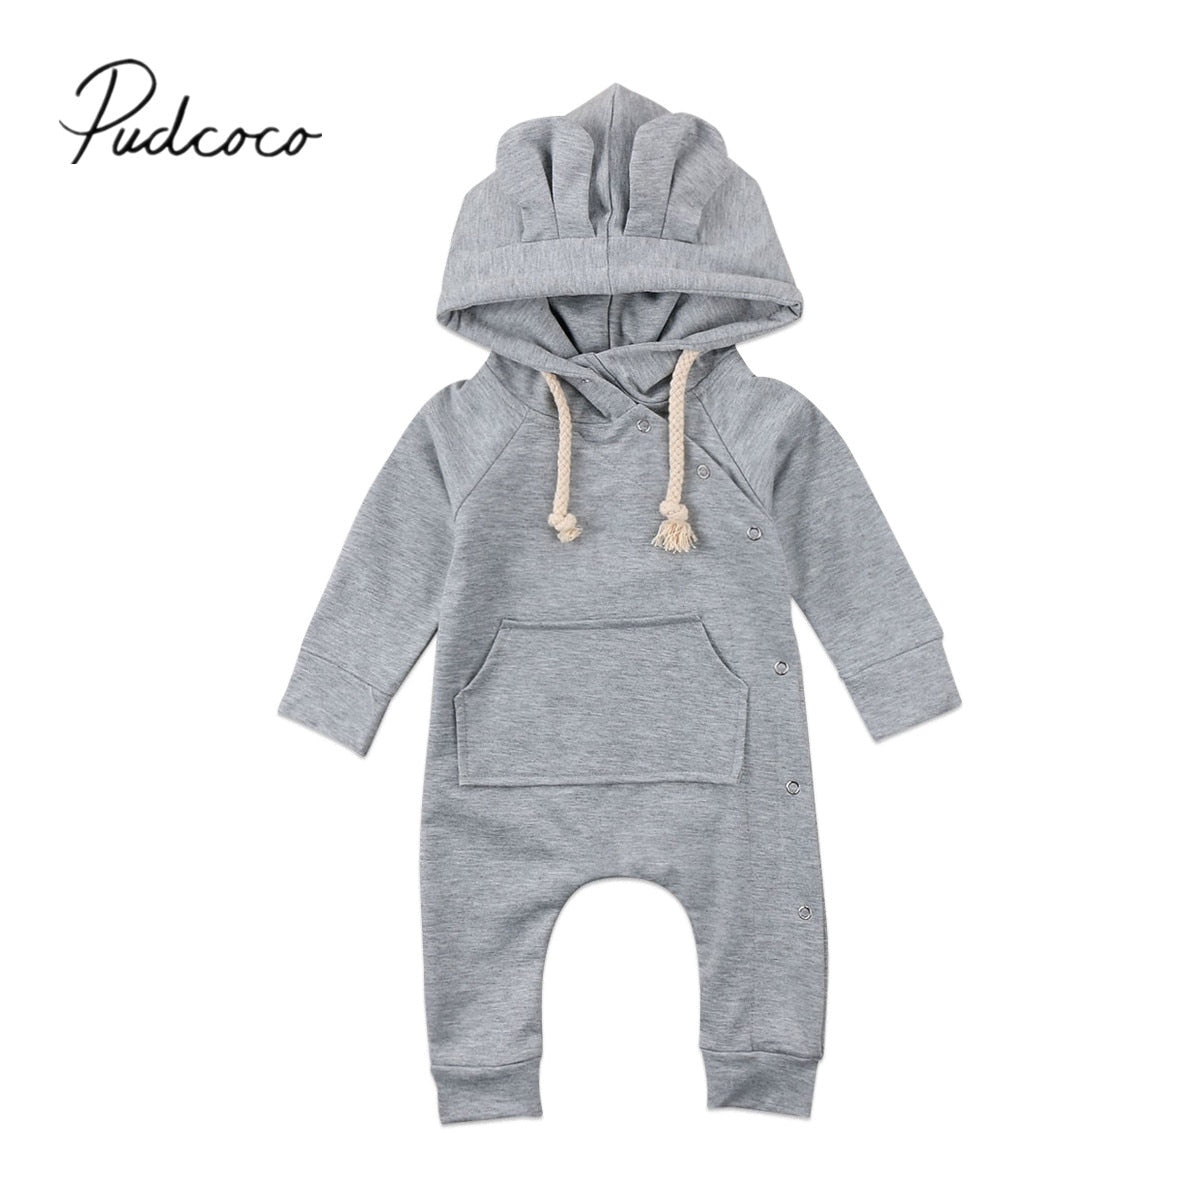 2018 Brand New Newborn Toddler Infant Baby Girl Boys Hooded Romper Jumpsuit Playsuit Long Sleeve Clothes Little Ear Warm Outfits-eosegal